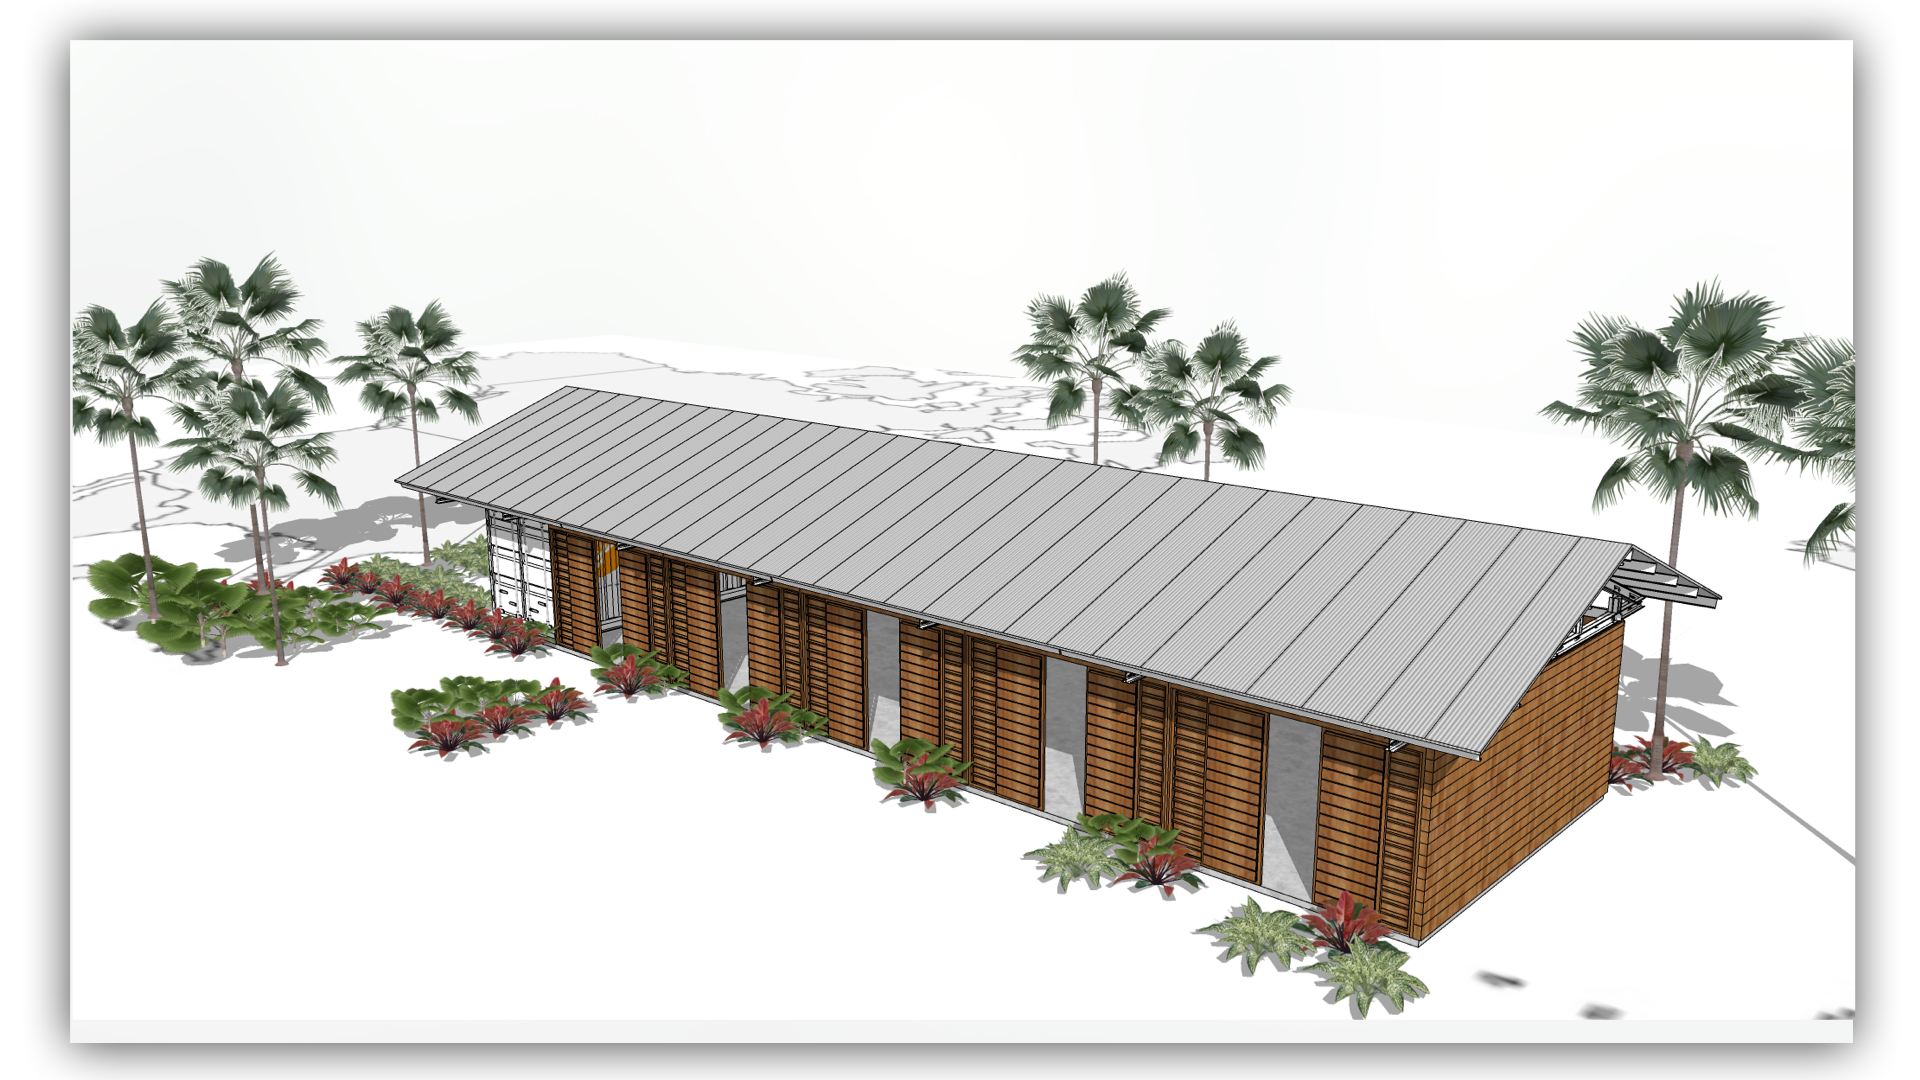 Development - The frame is fully engineered to satisfy local building codes. Local materials and resources can be used to create a variety of buildings, while still maintaining a guarantee for life-safety standards. This allows for local investment and capacity building in development projects.